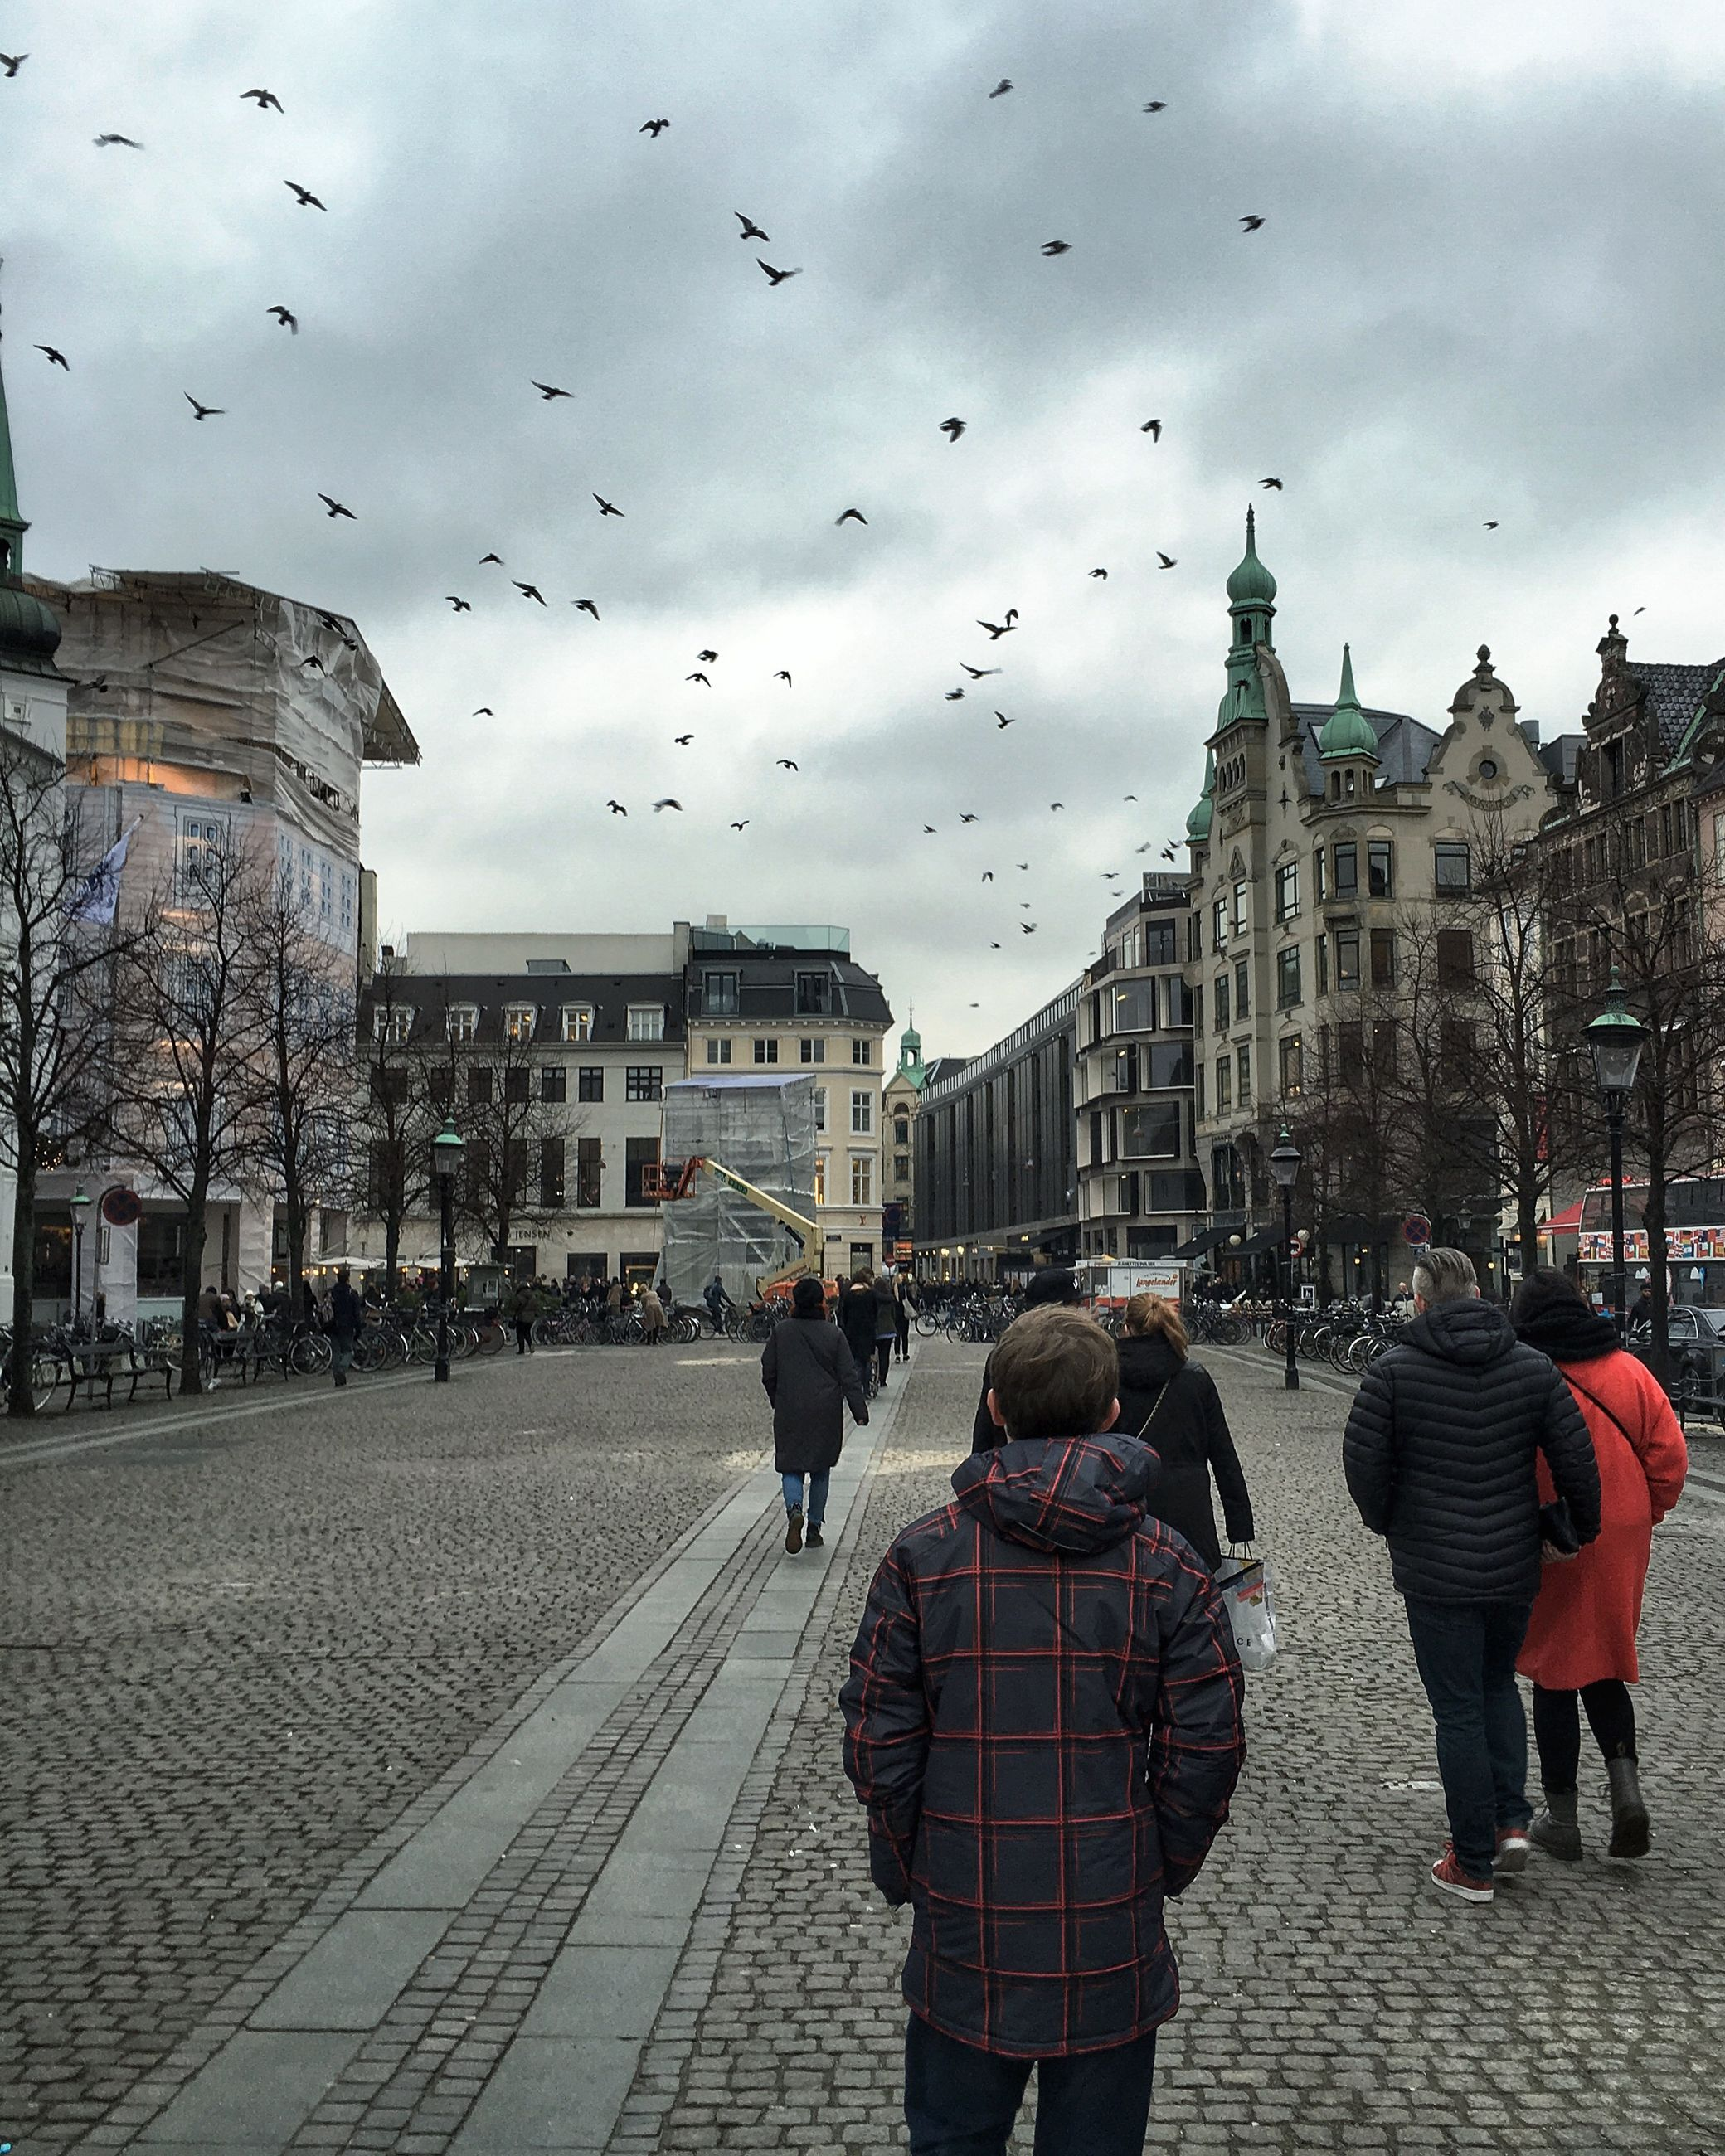 building exterior, architecture, built structure, sky, lifestyles, men, person, walking, large group of people, bird, leisure activity, city, cloud - sky, flying, street, city life, full length, rear view